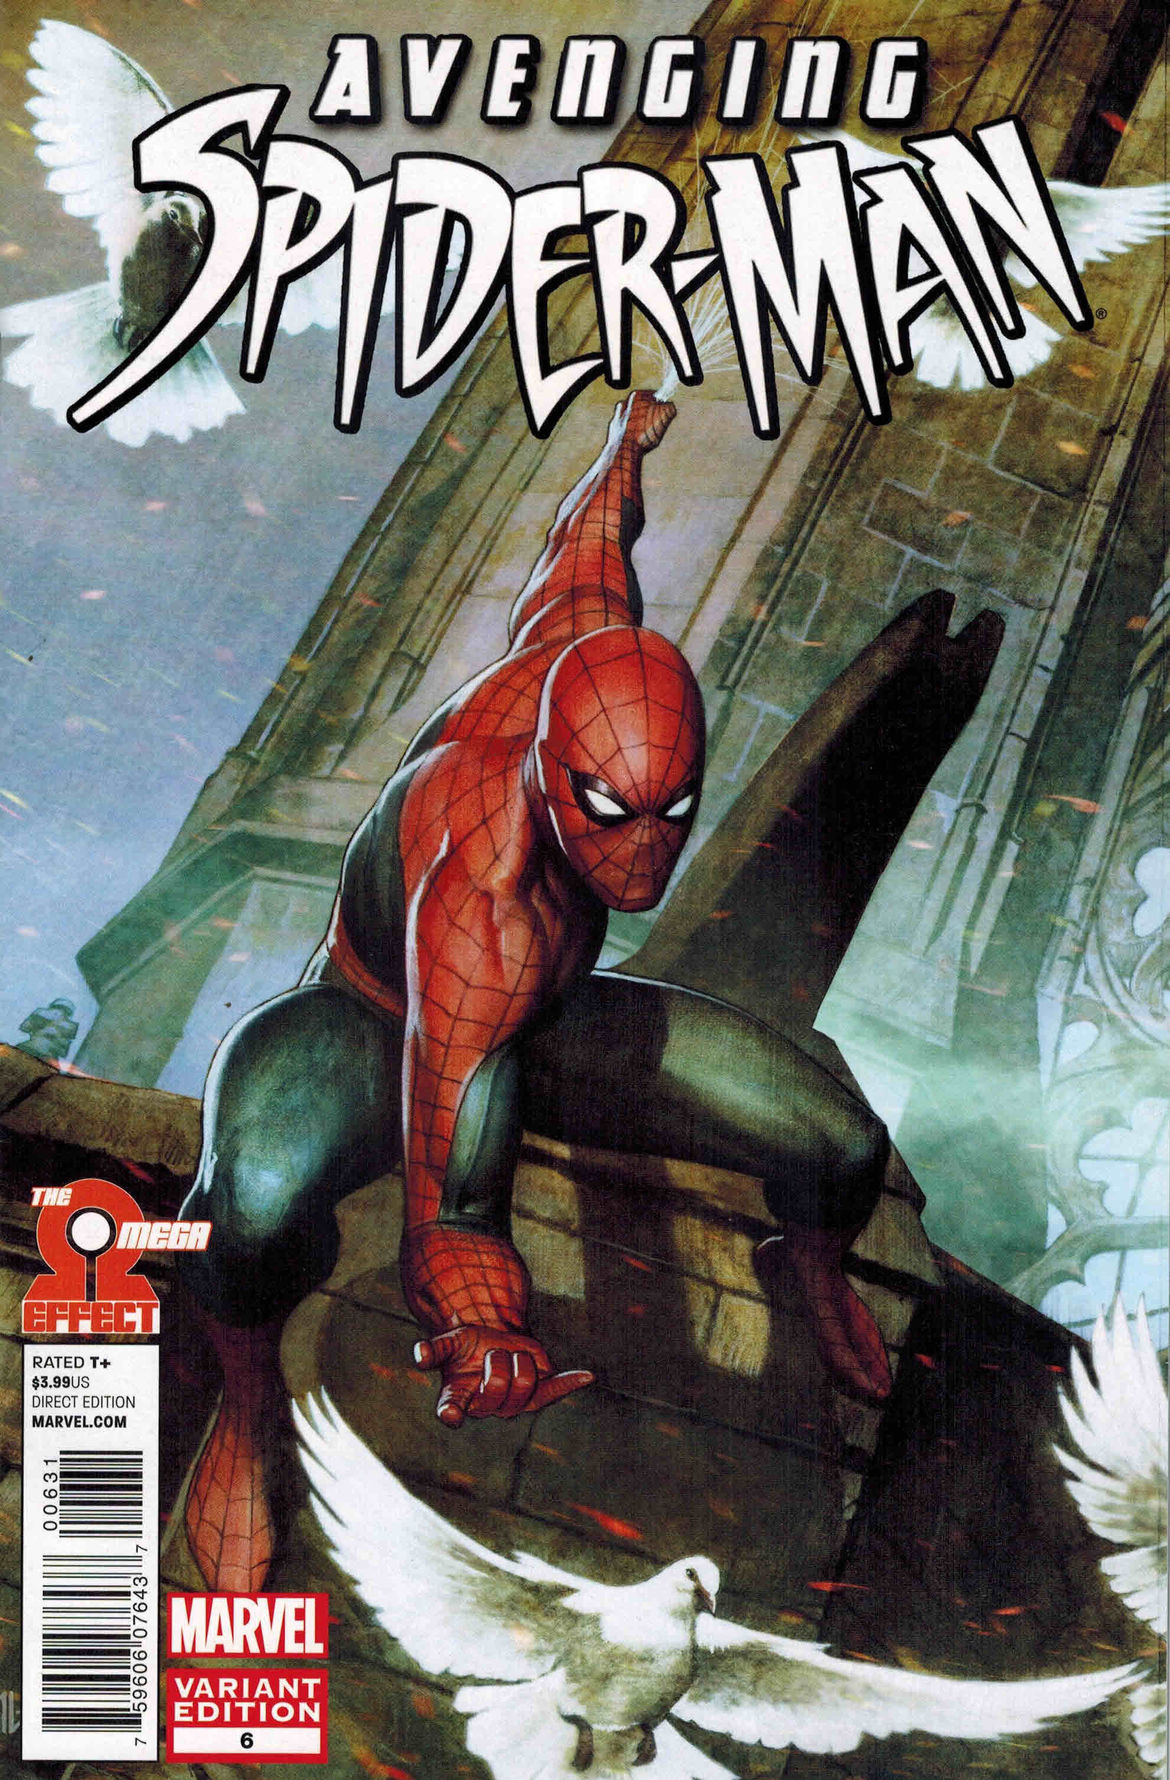 Adi Granov, Spider-Man, Marvel Comics